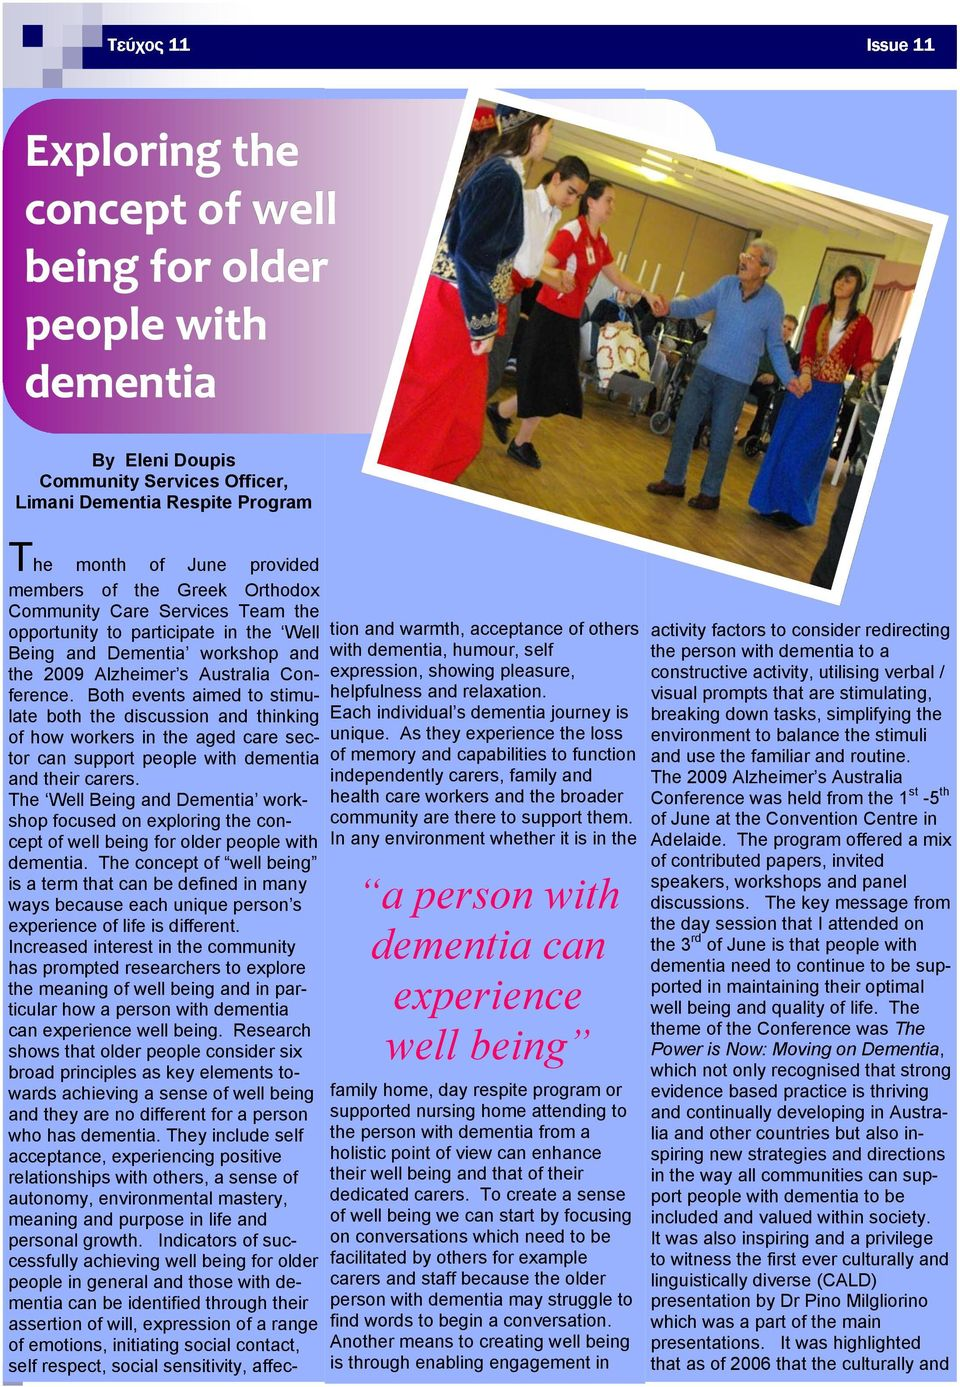 Both events aimed to stimulate both the discussion and thinking of how workers in the aged care sector can support people with dementia and their carers.